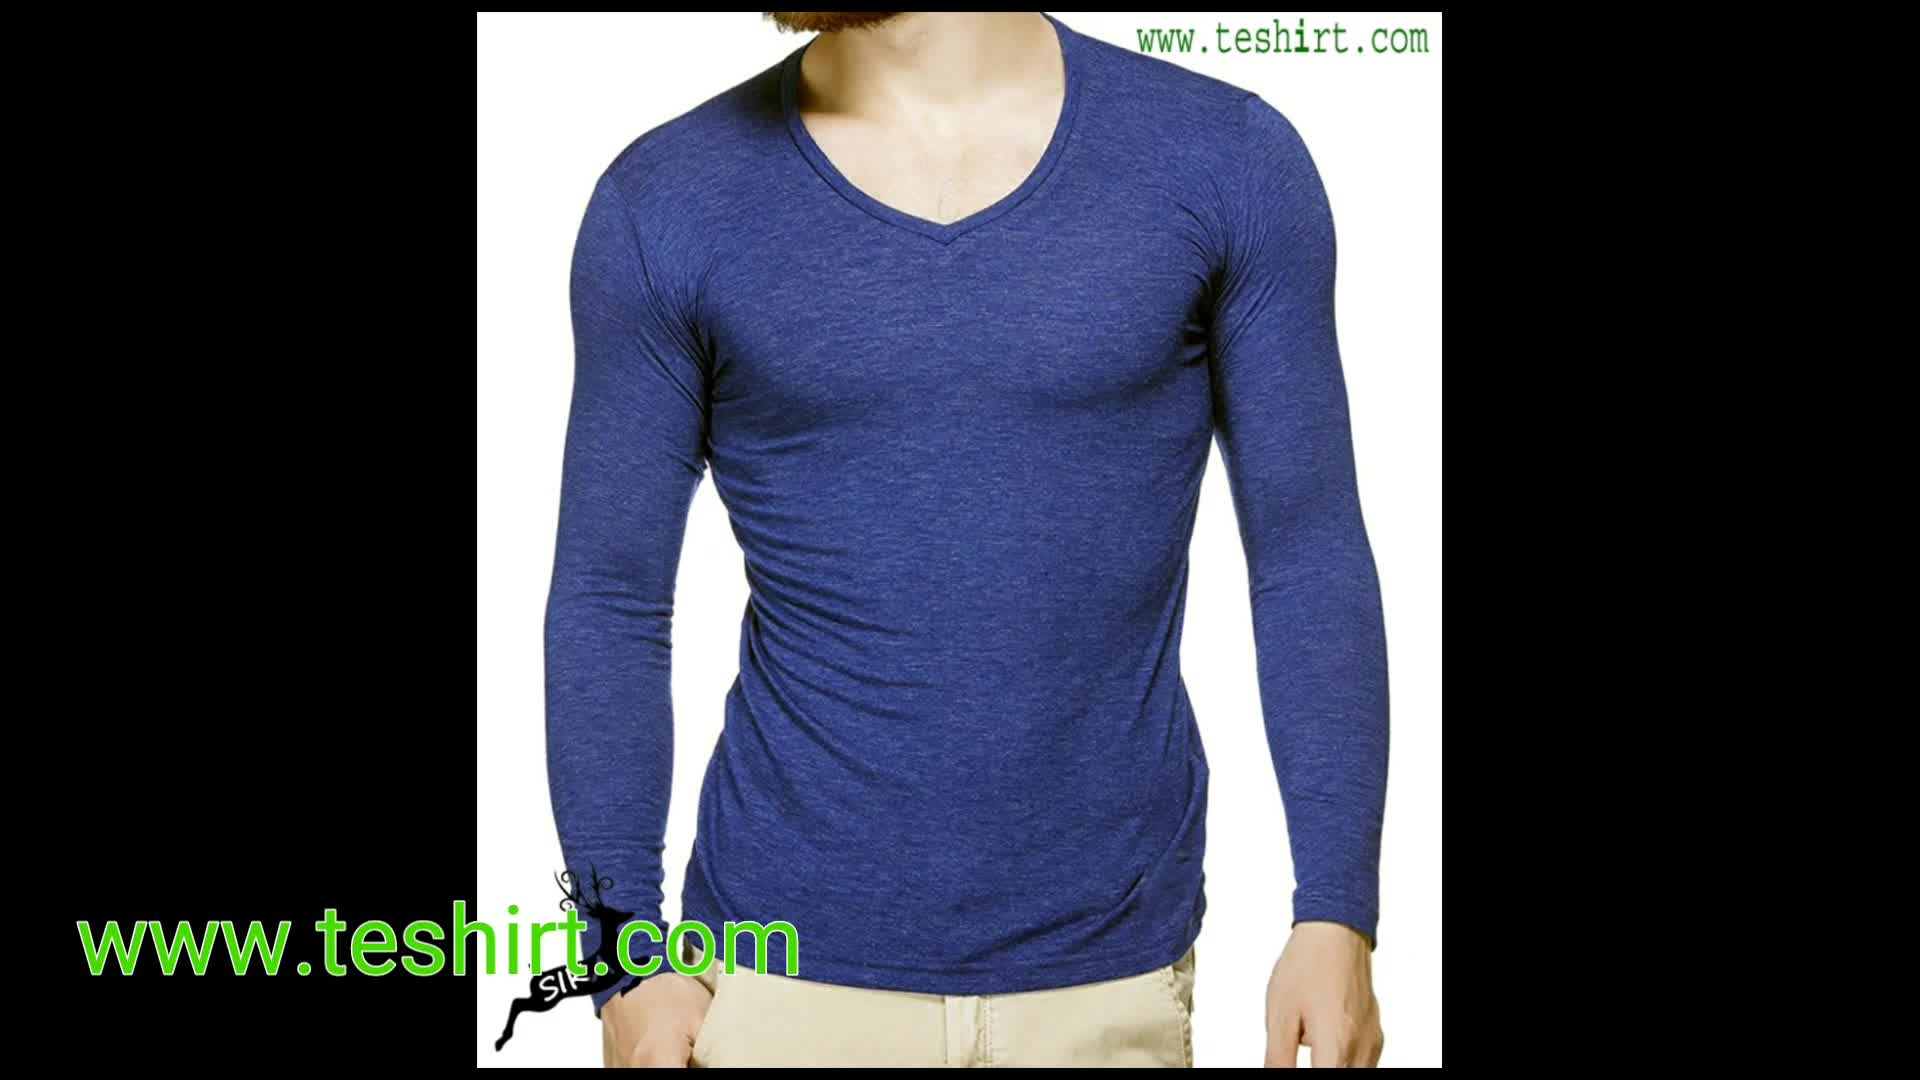 Direct factory sale High quality New arrival grey long sleeve cotton custom men's t shirt